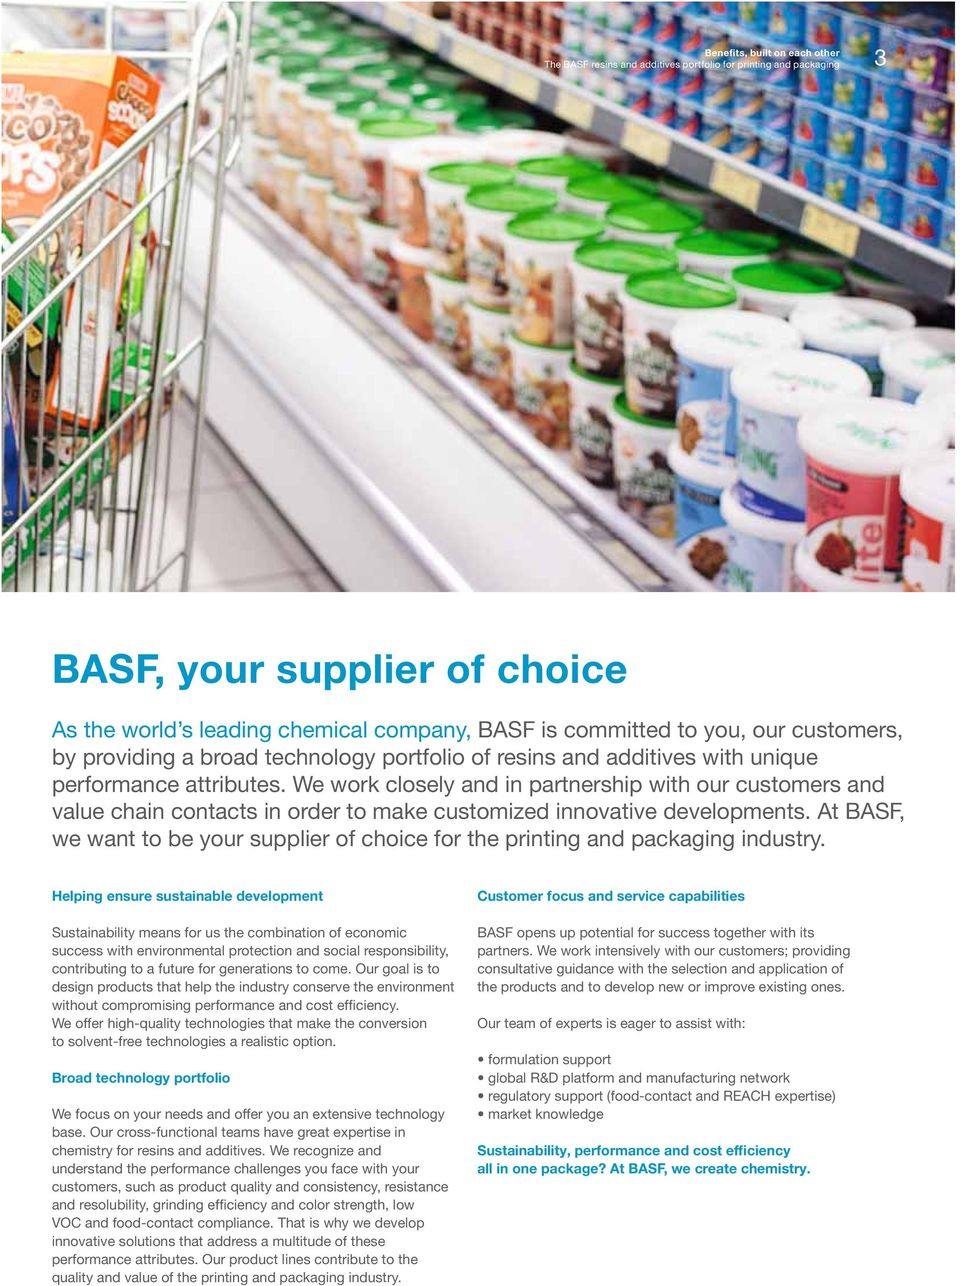 At BASF, we want to be your supplier of choice for the printing and packaging industry.